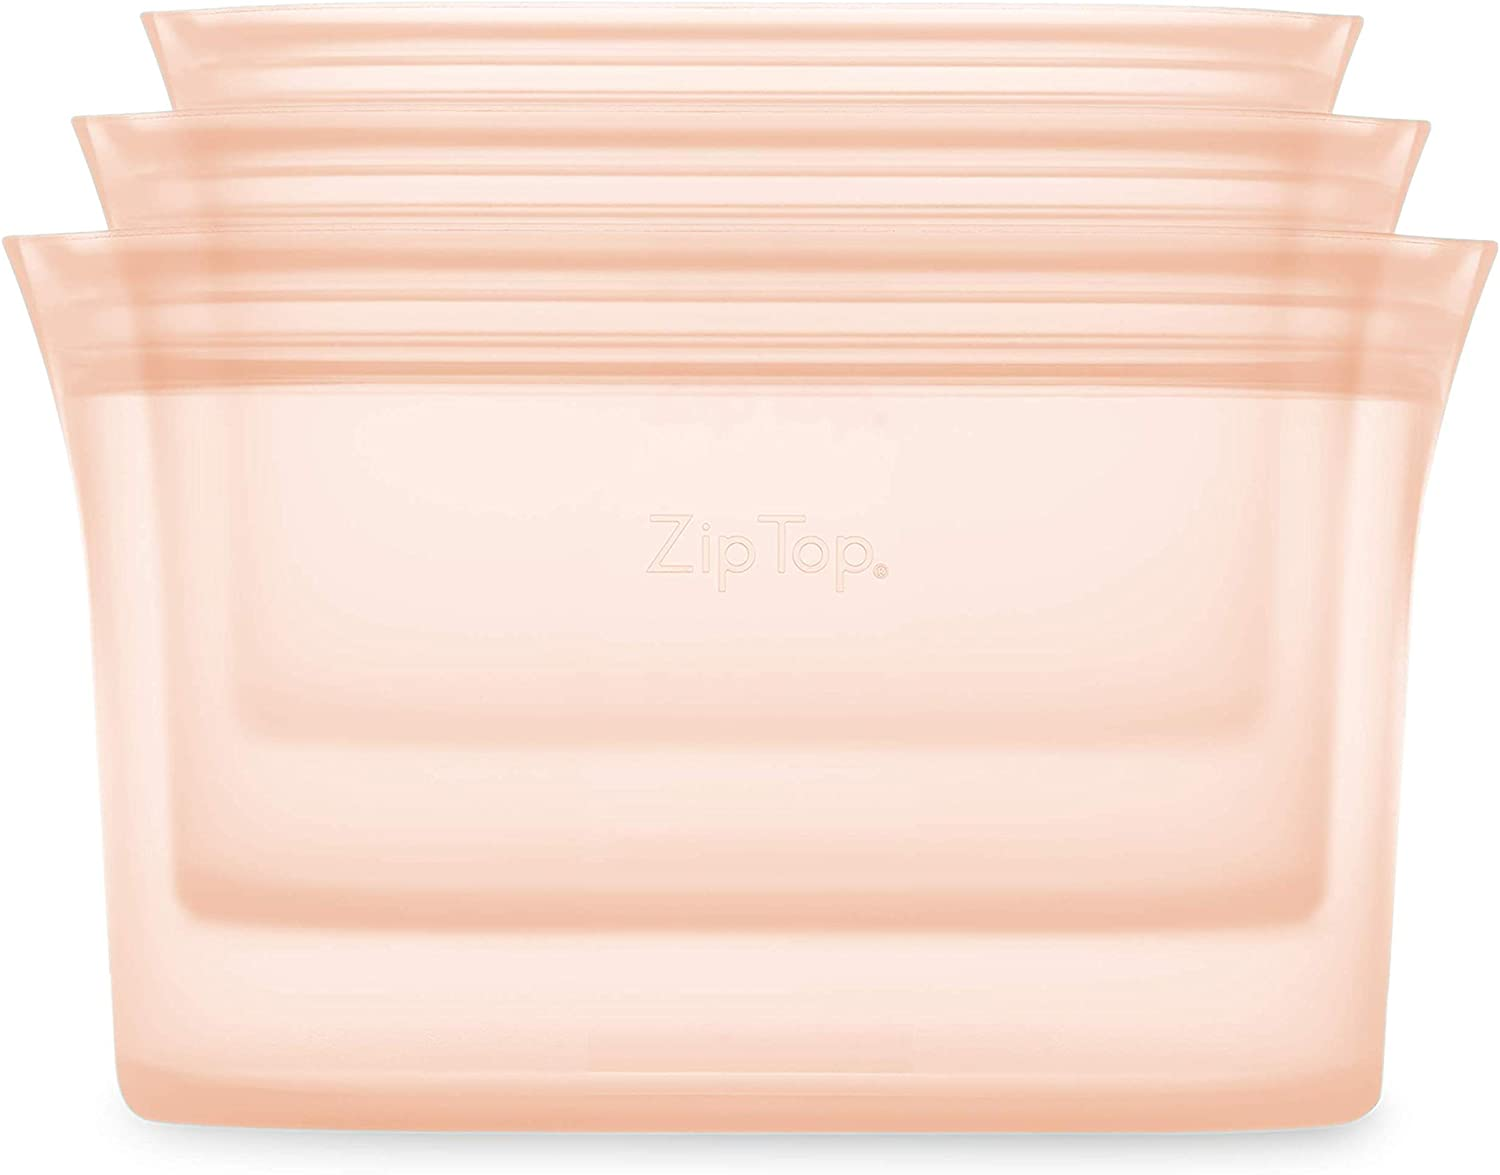 Zip Top Reusable 100% Silicone Food Storage Bags and Containers - 3 Dish Set - Peach